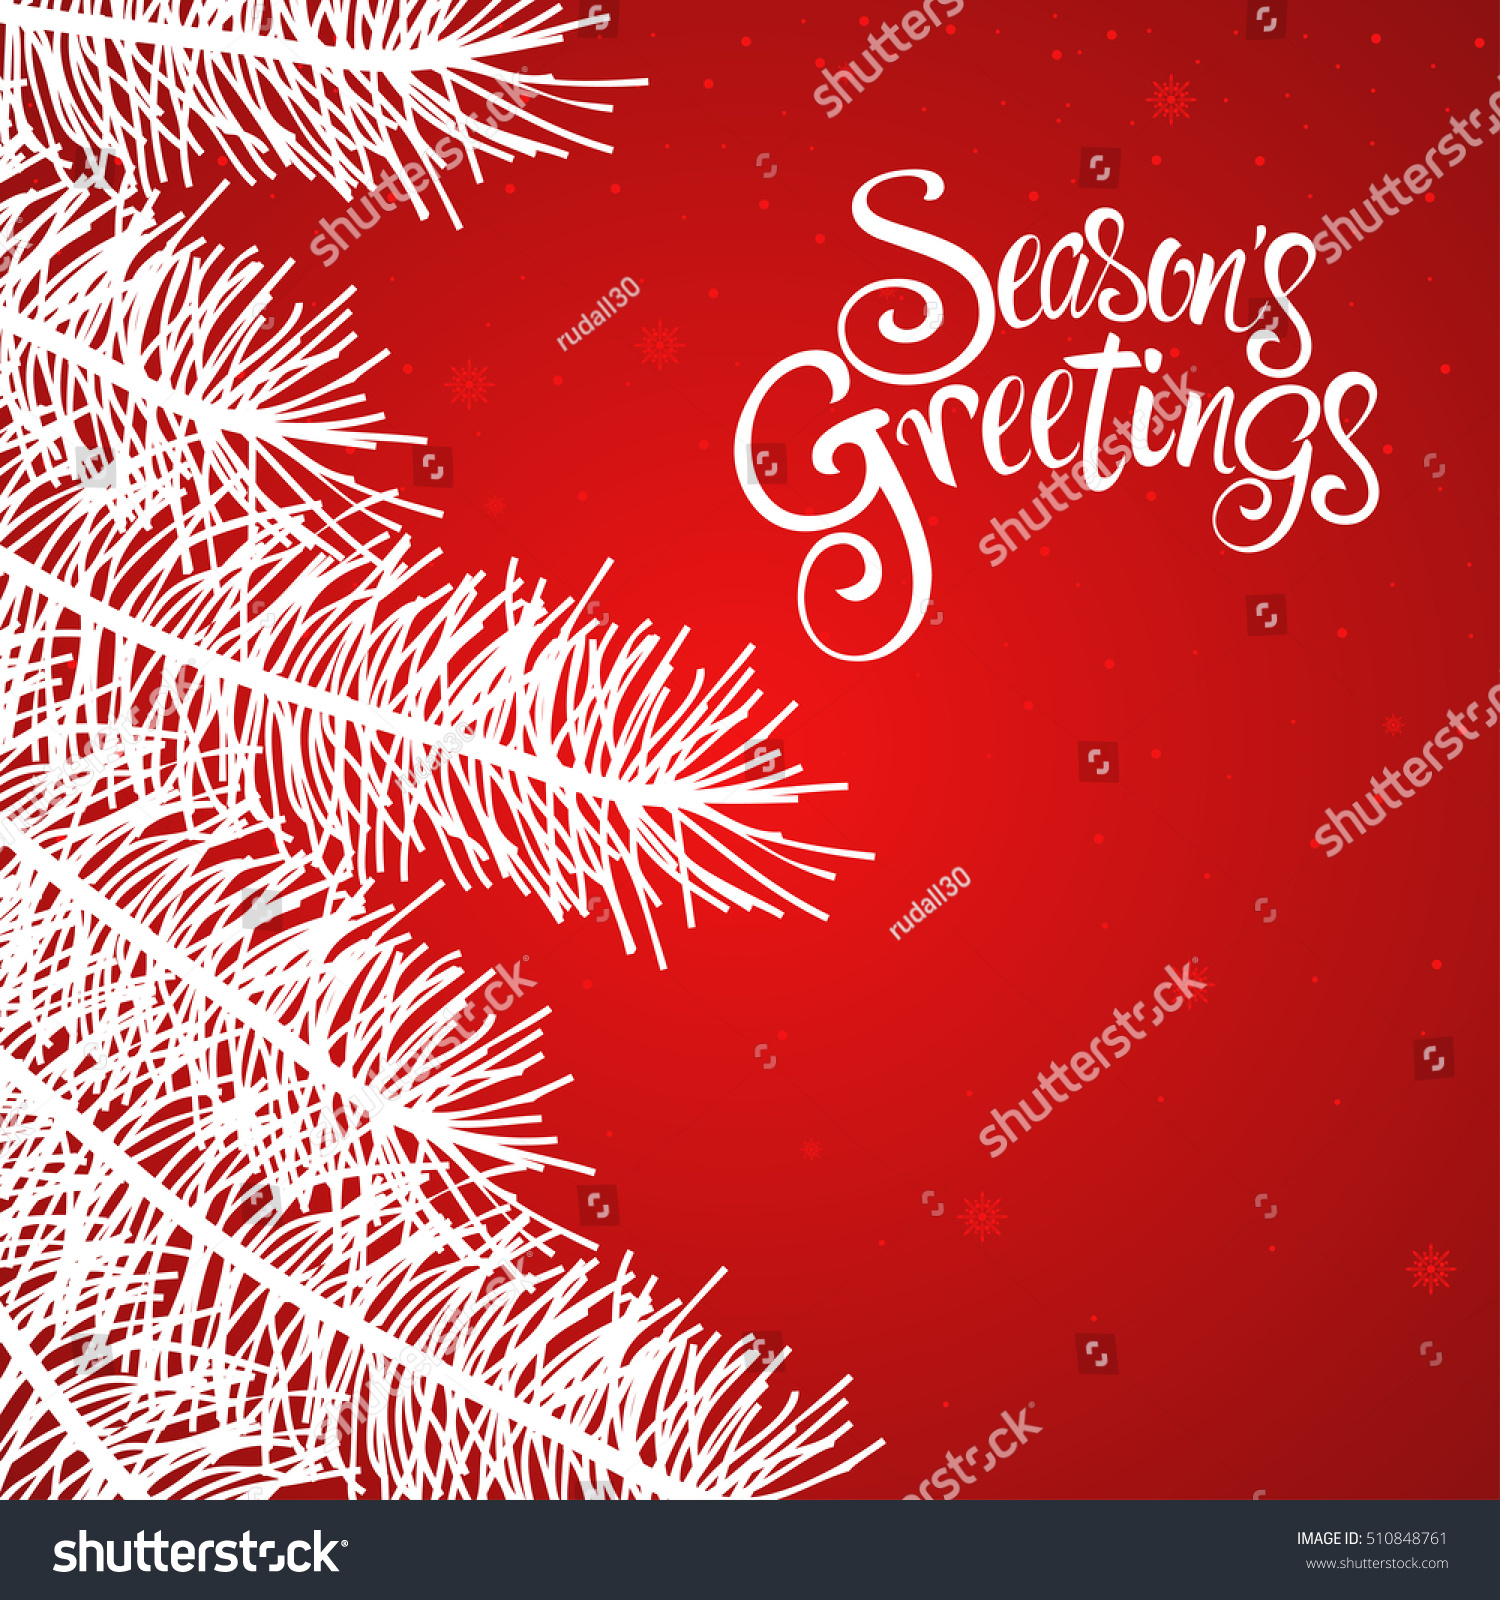 text seasons greetings decorative pine trees stock vector